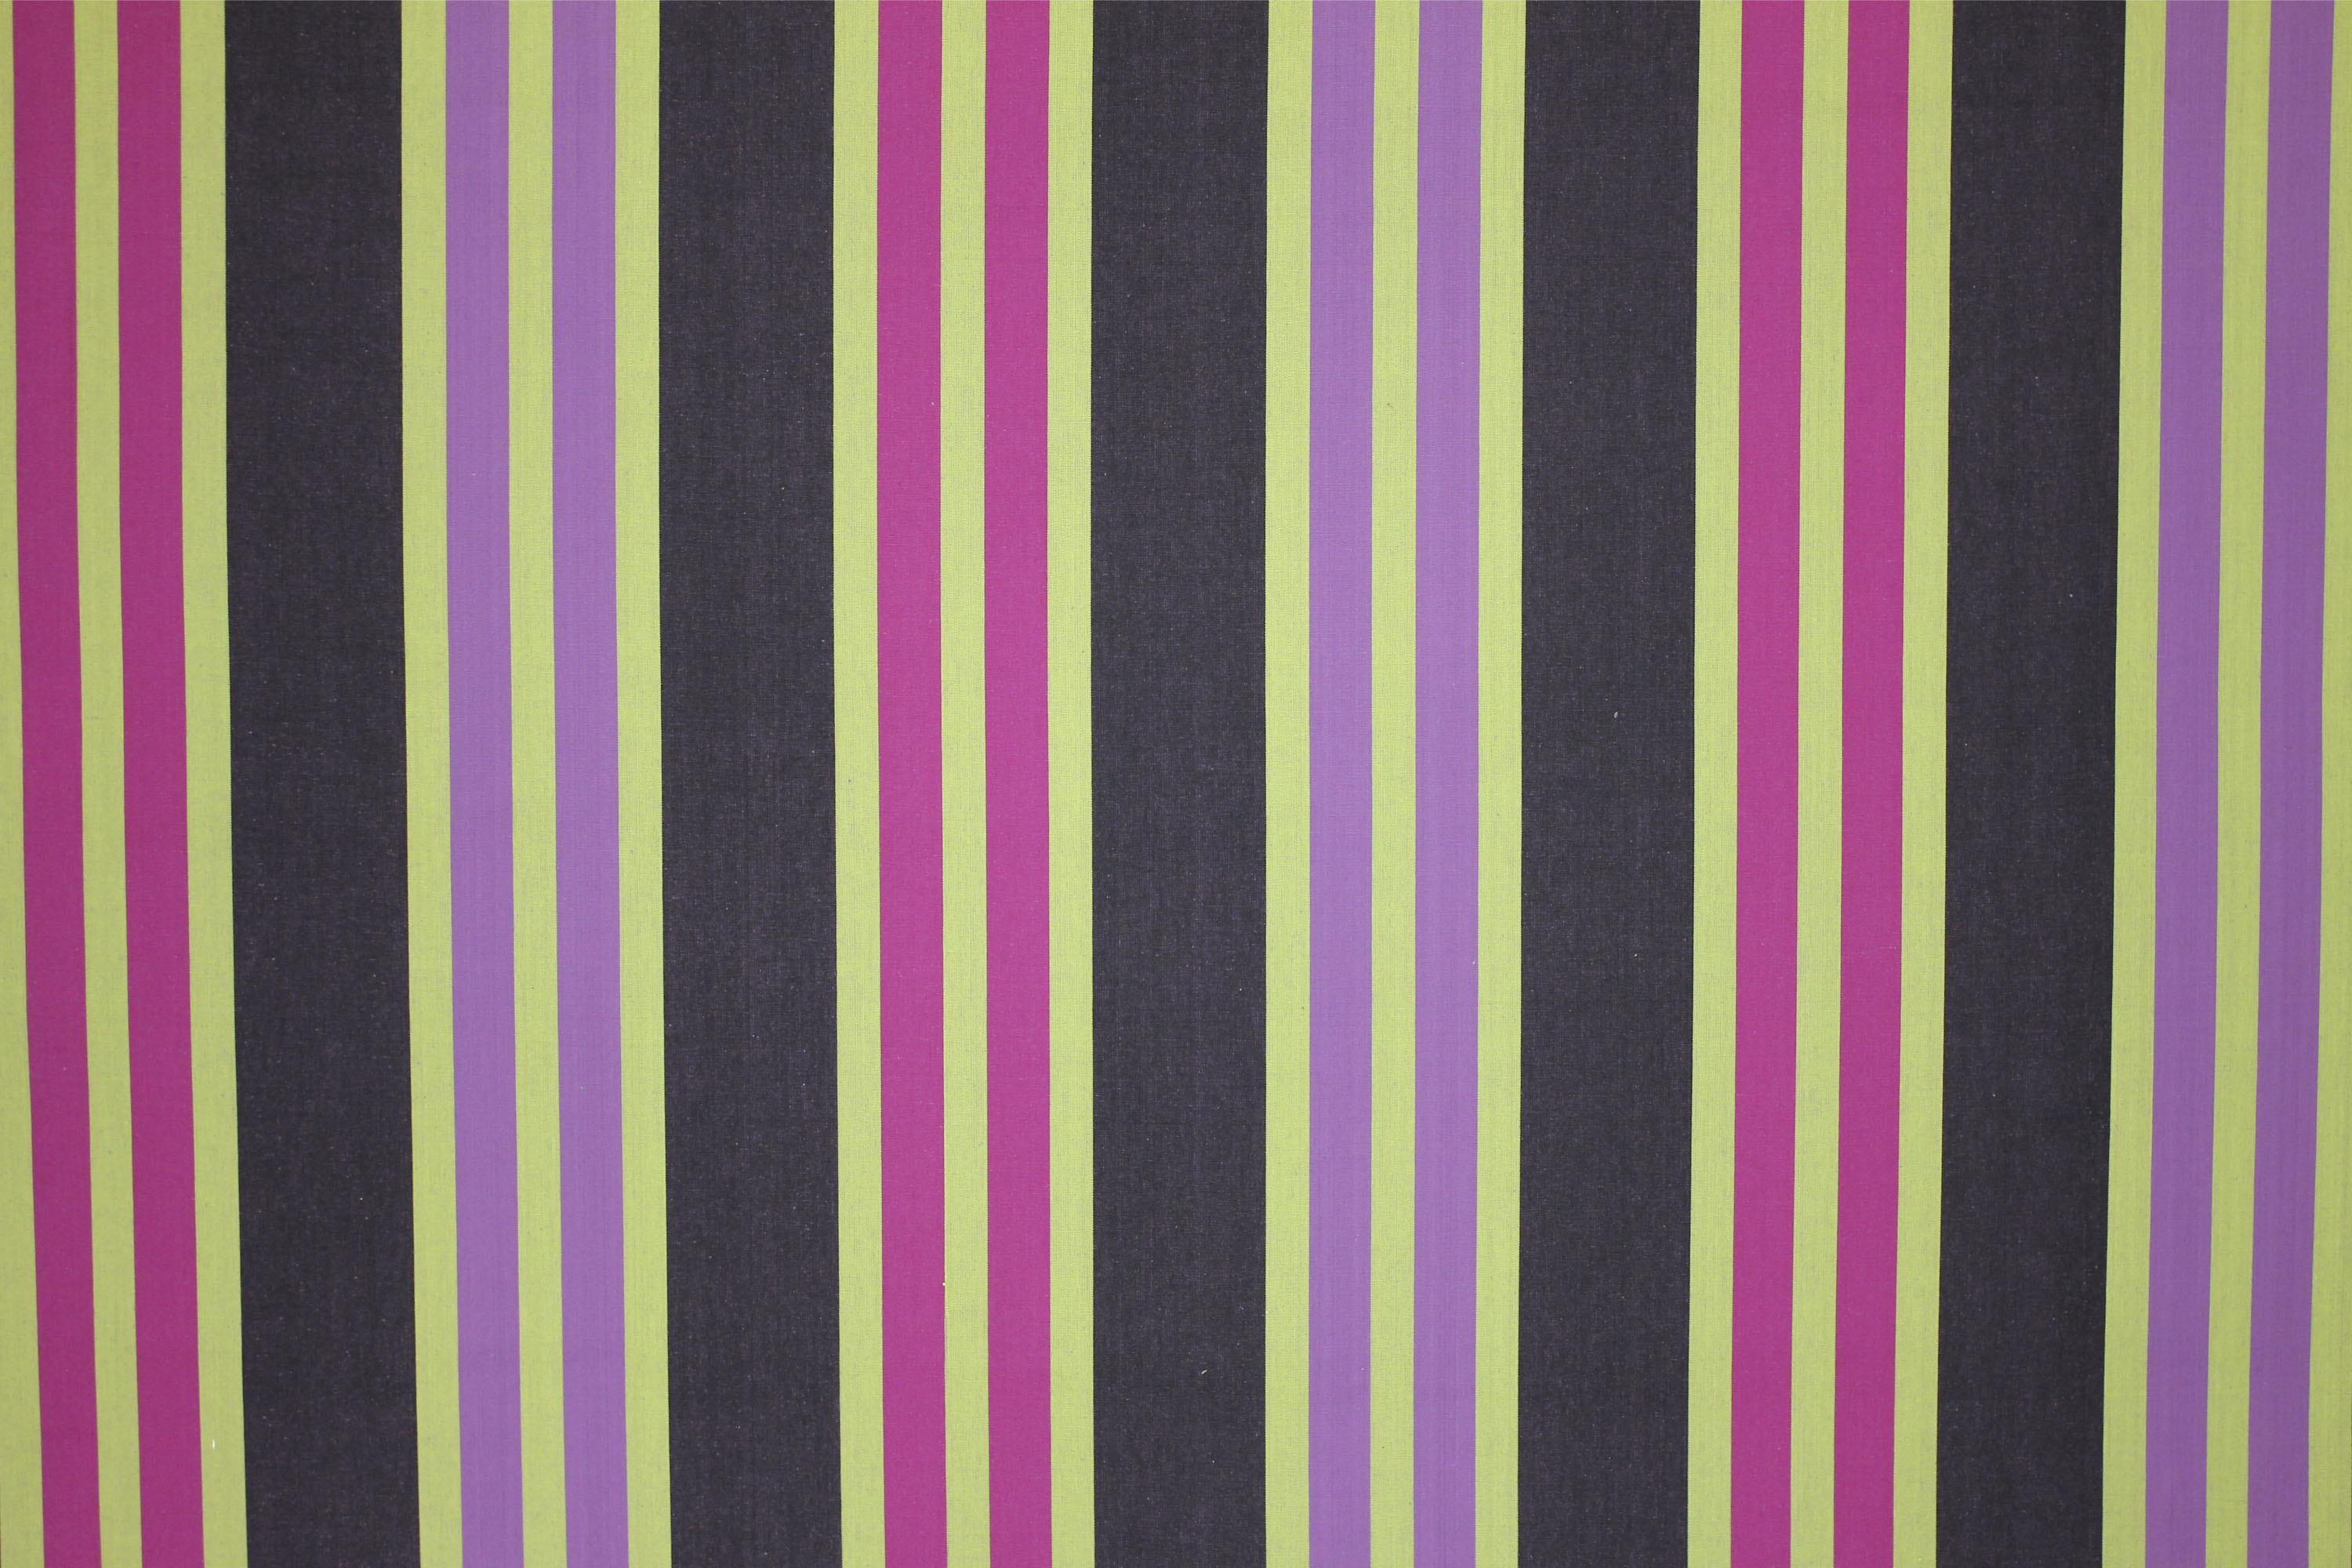 Ninjitsu Black Striped Fabric